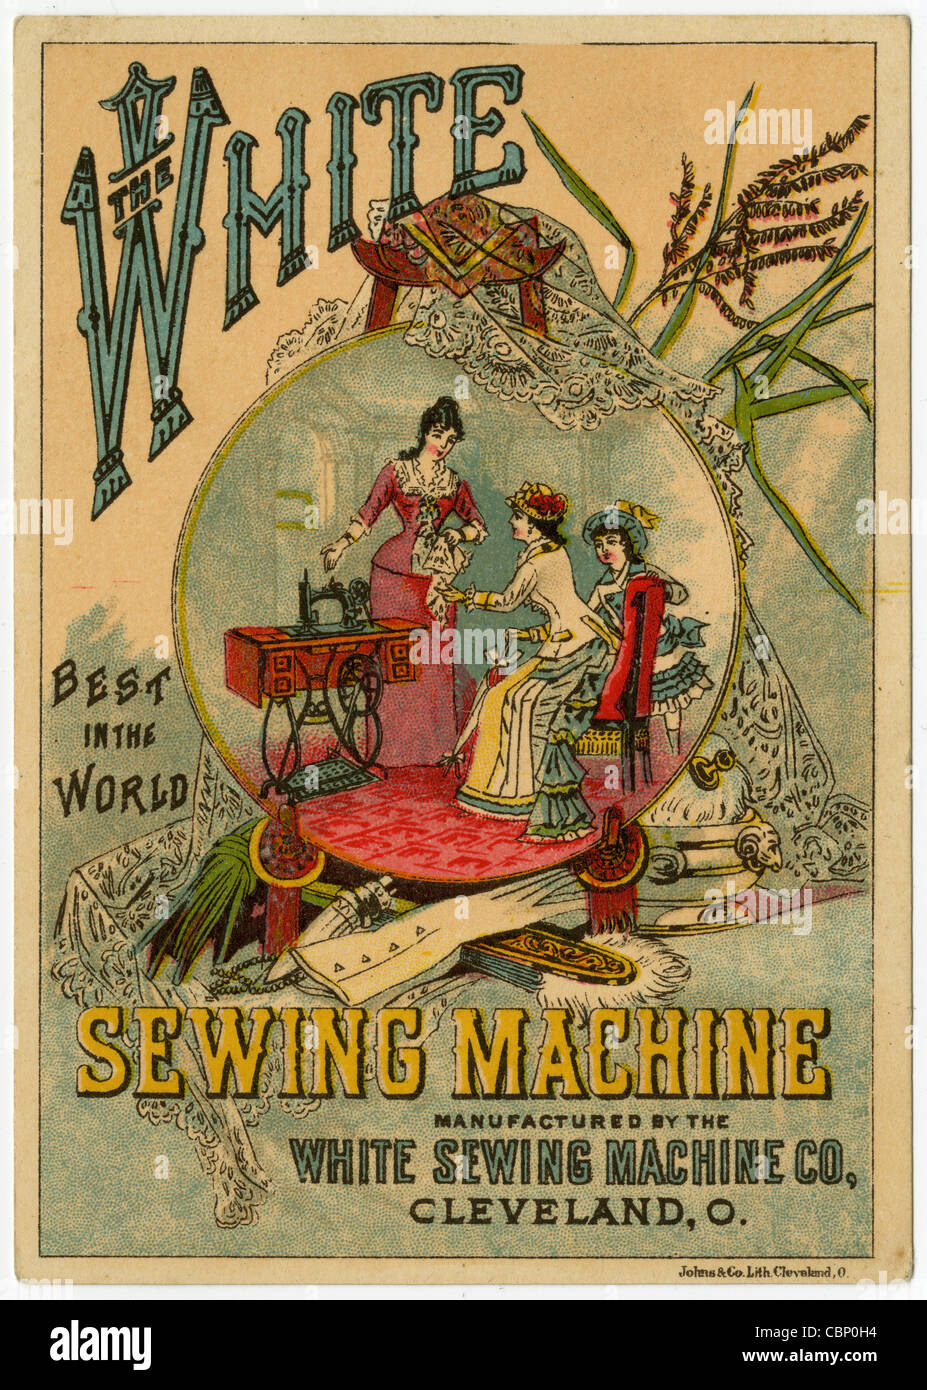 Sewing Machine 19th Century Stock Photos & Sewing Machine 19th ... : quilt shops in cleveland ohio - Adamdwight.com